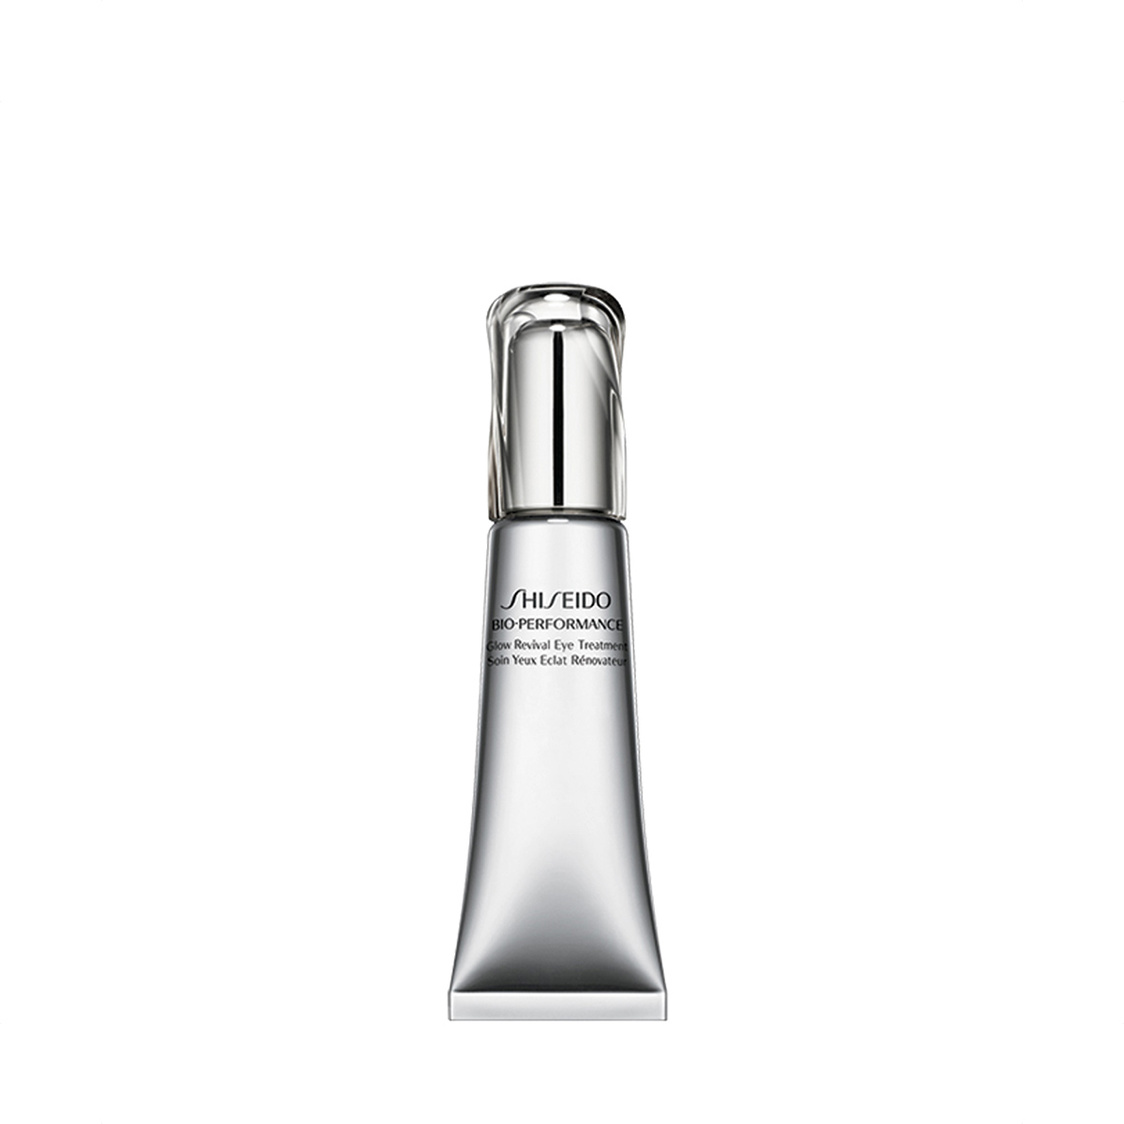 Bio-Performance Glow Revival Eye Treatment 15ml